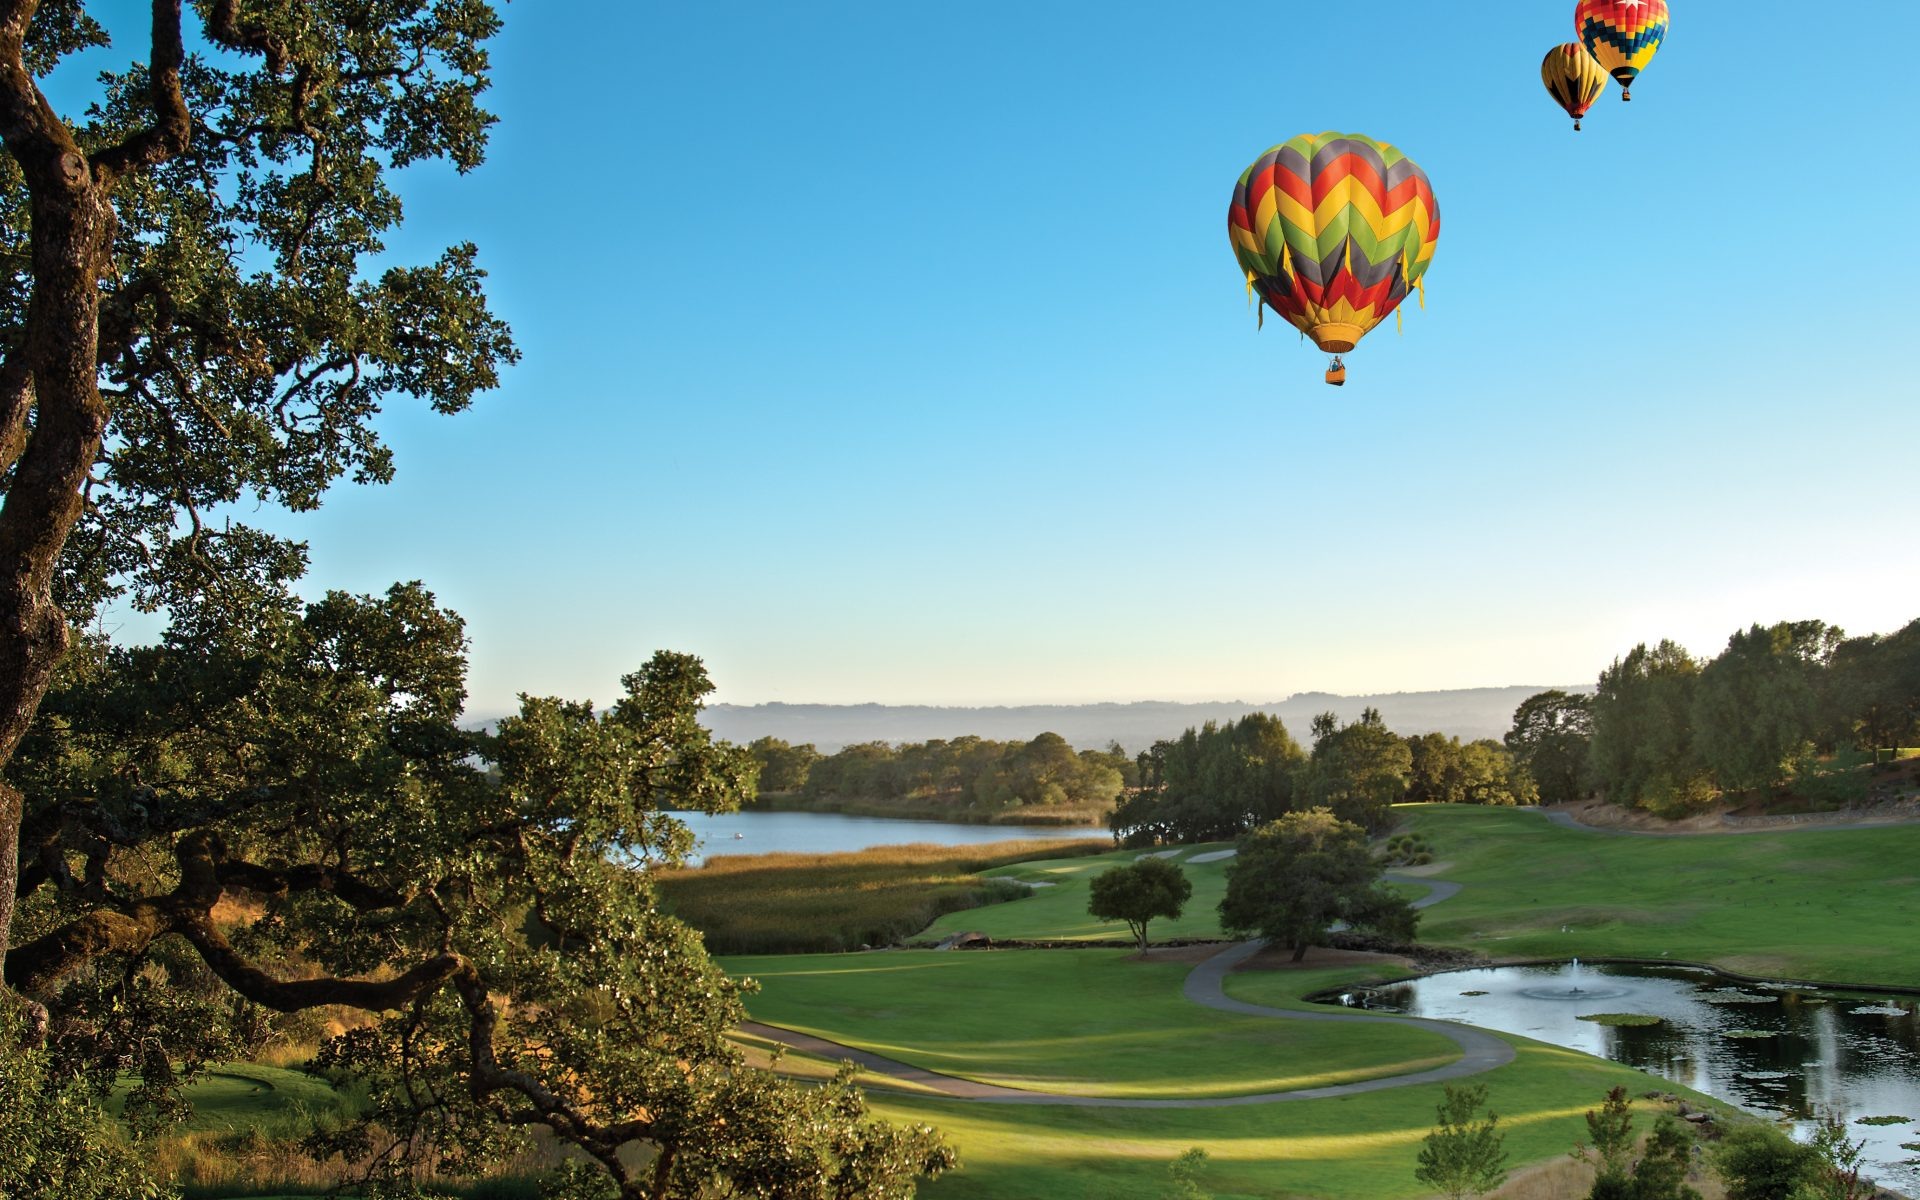 view of a golf course with hot air balloons in the sky